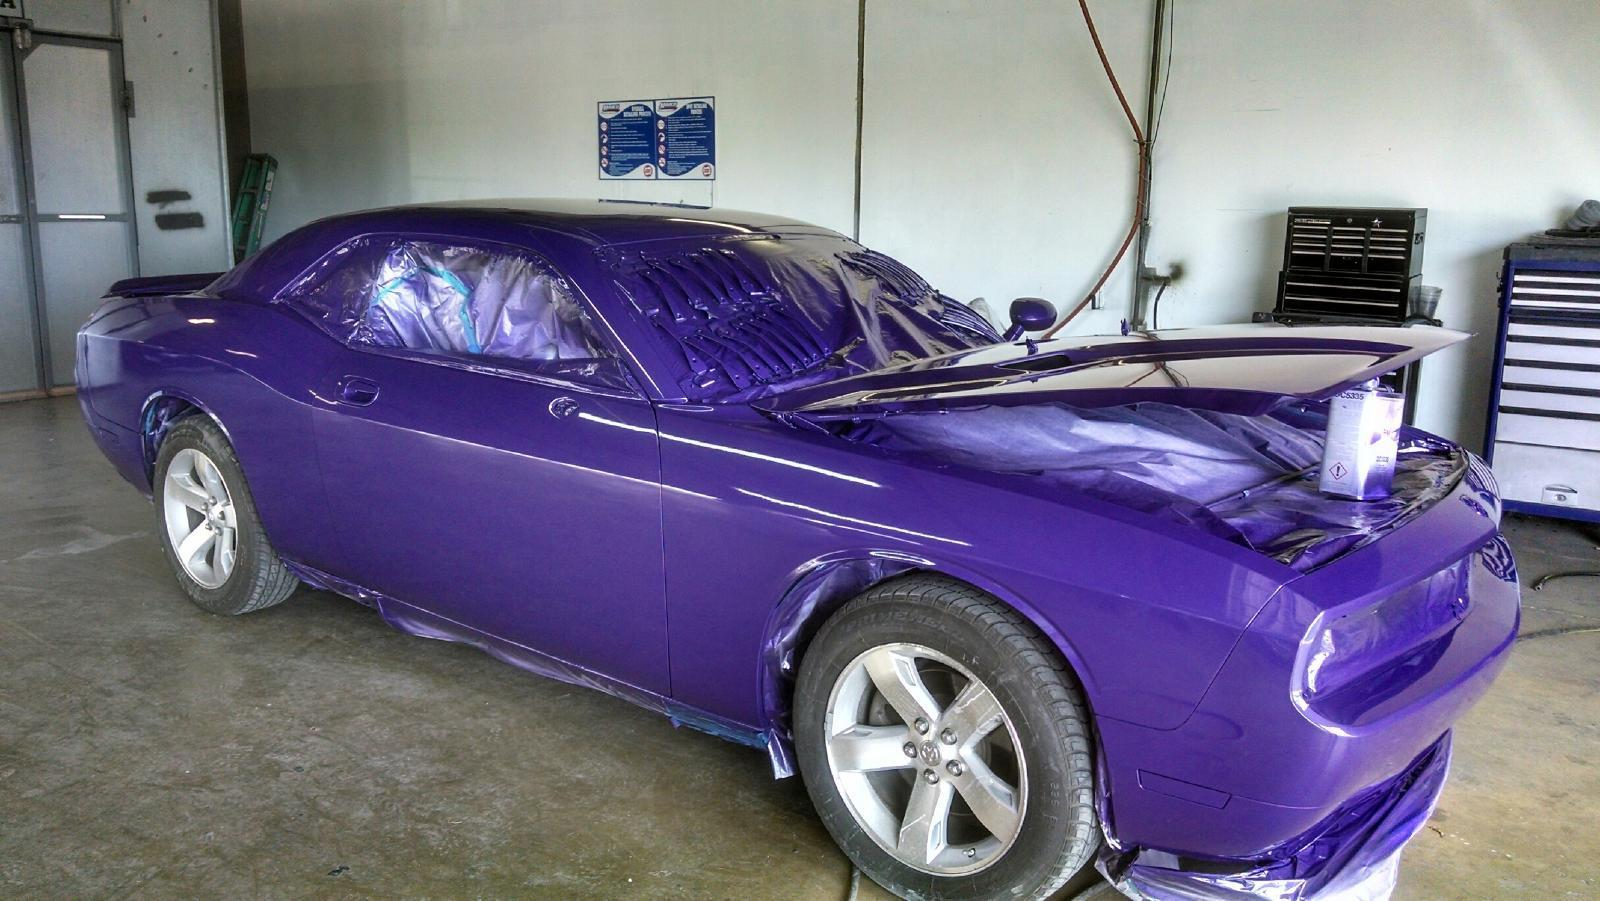 Maaco Collision Repair & Auto Painting In Lancaster, TX